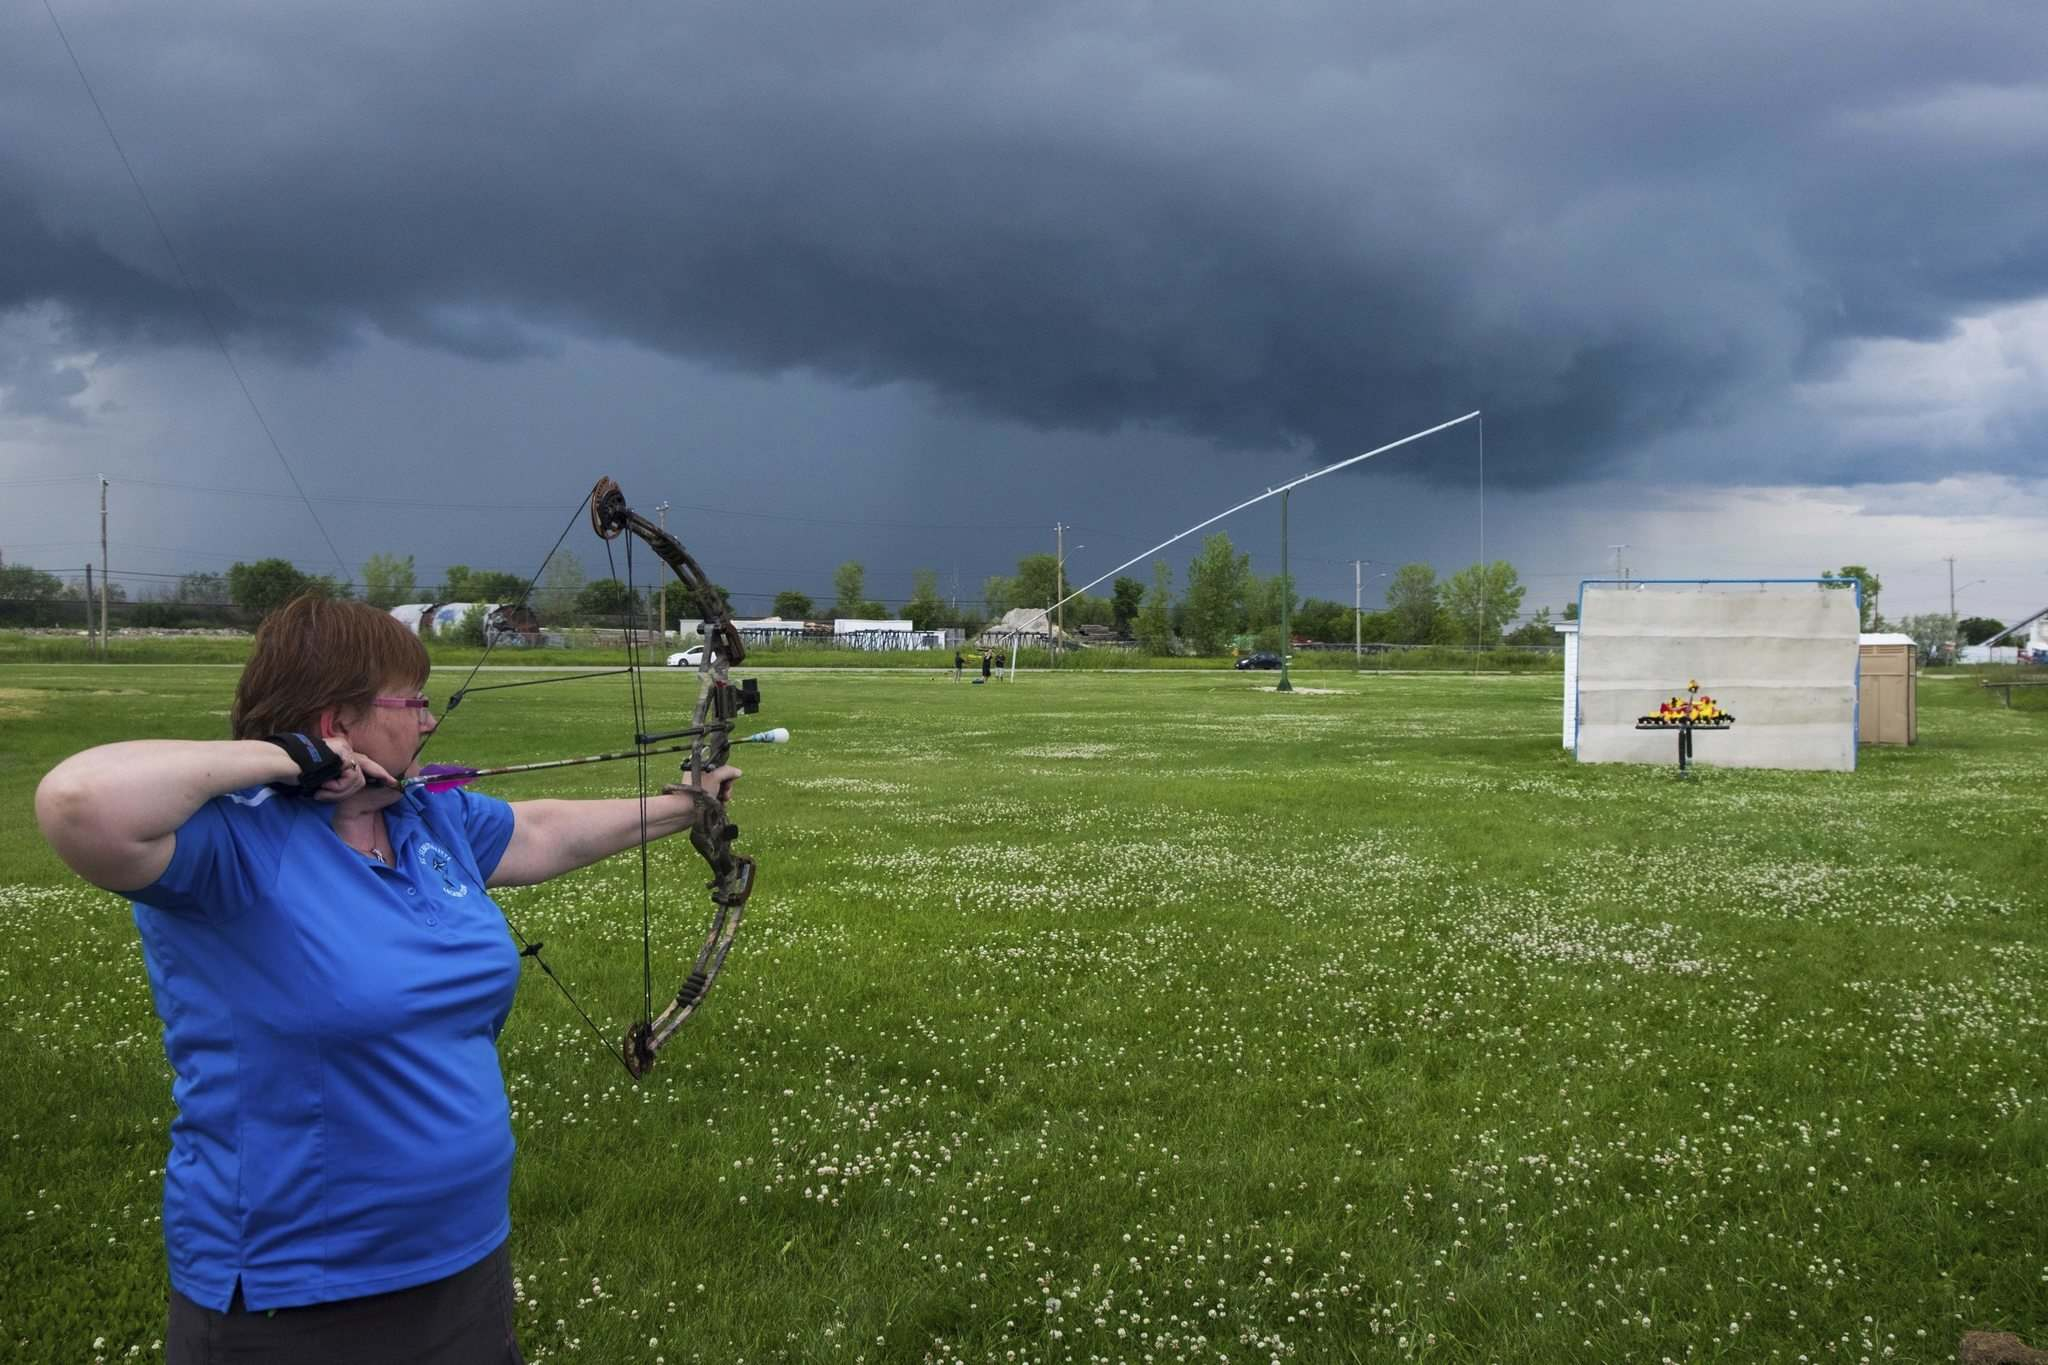 Denise Arcand of the St. Sebastianette Archery Club lines focuses on her target as storm clouds gather on the horizon.</p></p>